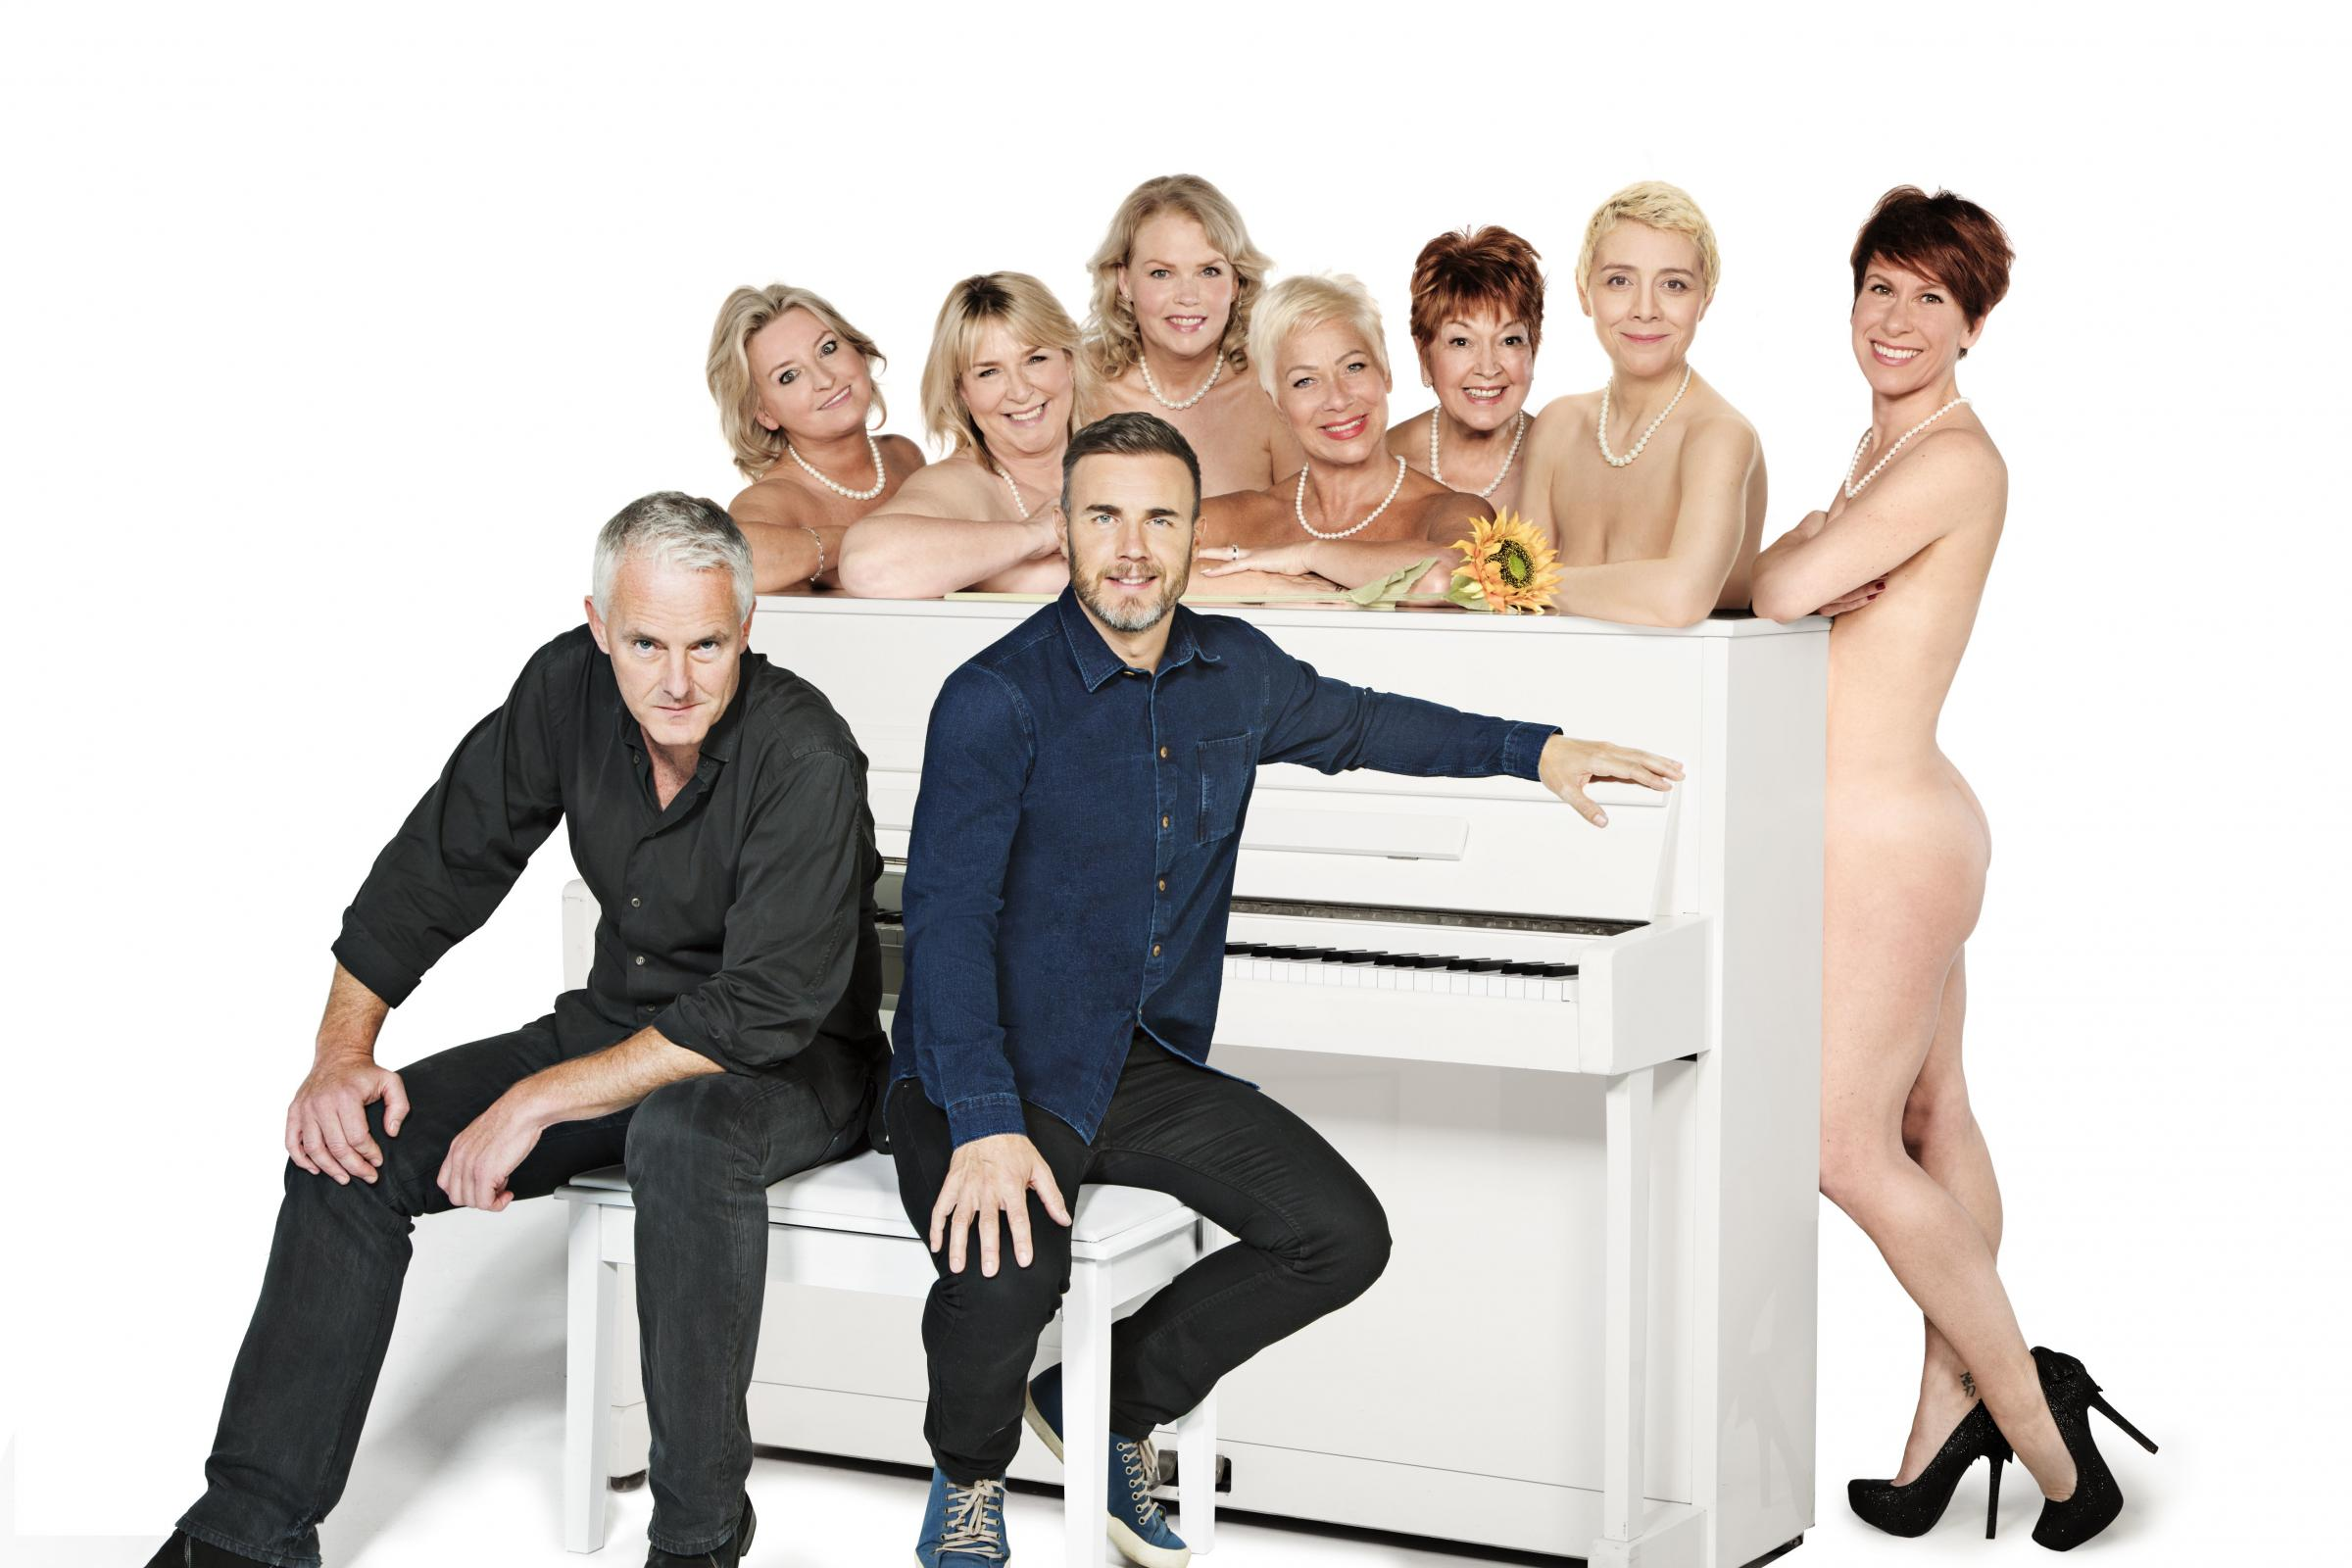 Calendar Girls-  Tim Firth, Gary Barlow, Back Rebecca Storm, Fern Britton, Sara Crowe, Denise Welch, Ruth Madoc, Karen Dunbar, Anna-Jane Casey